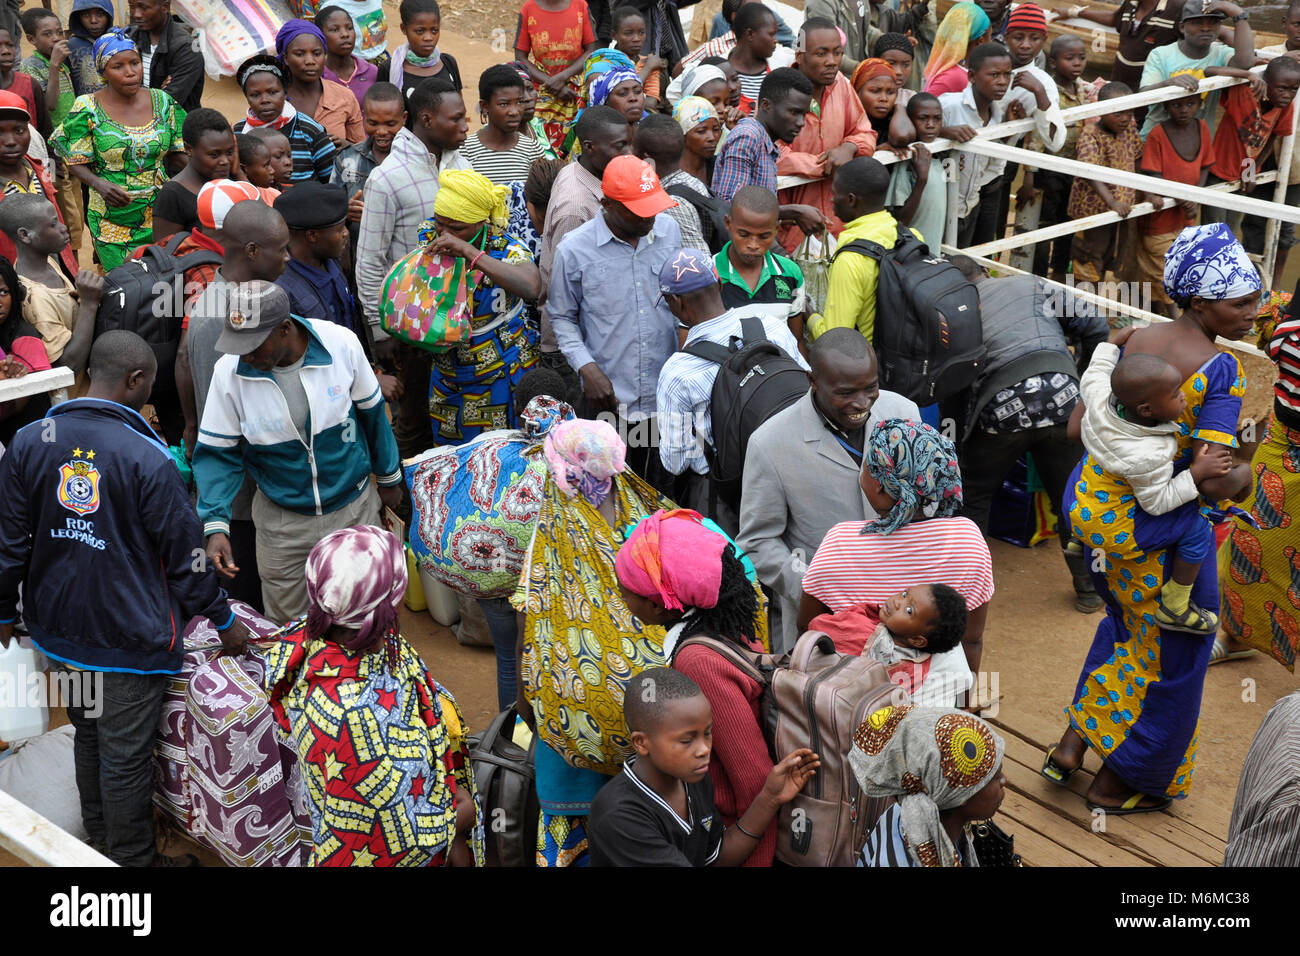 Democratic Republic of Congo, People boarding from Goma - Stock Image